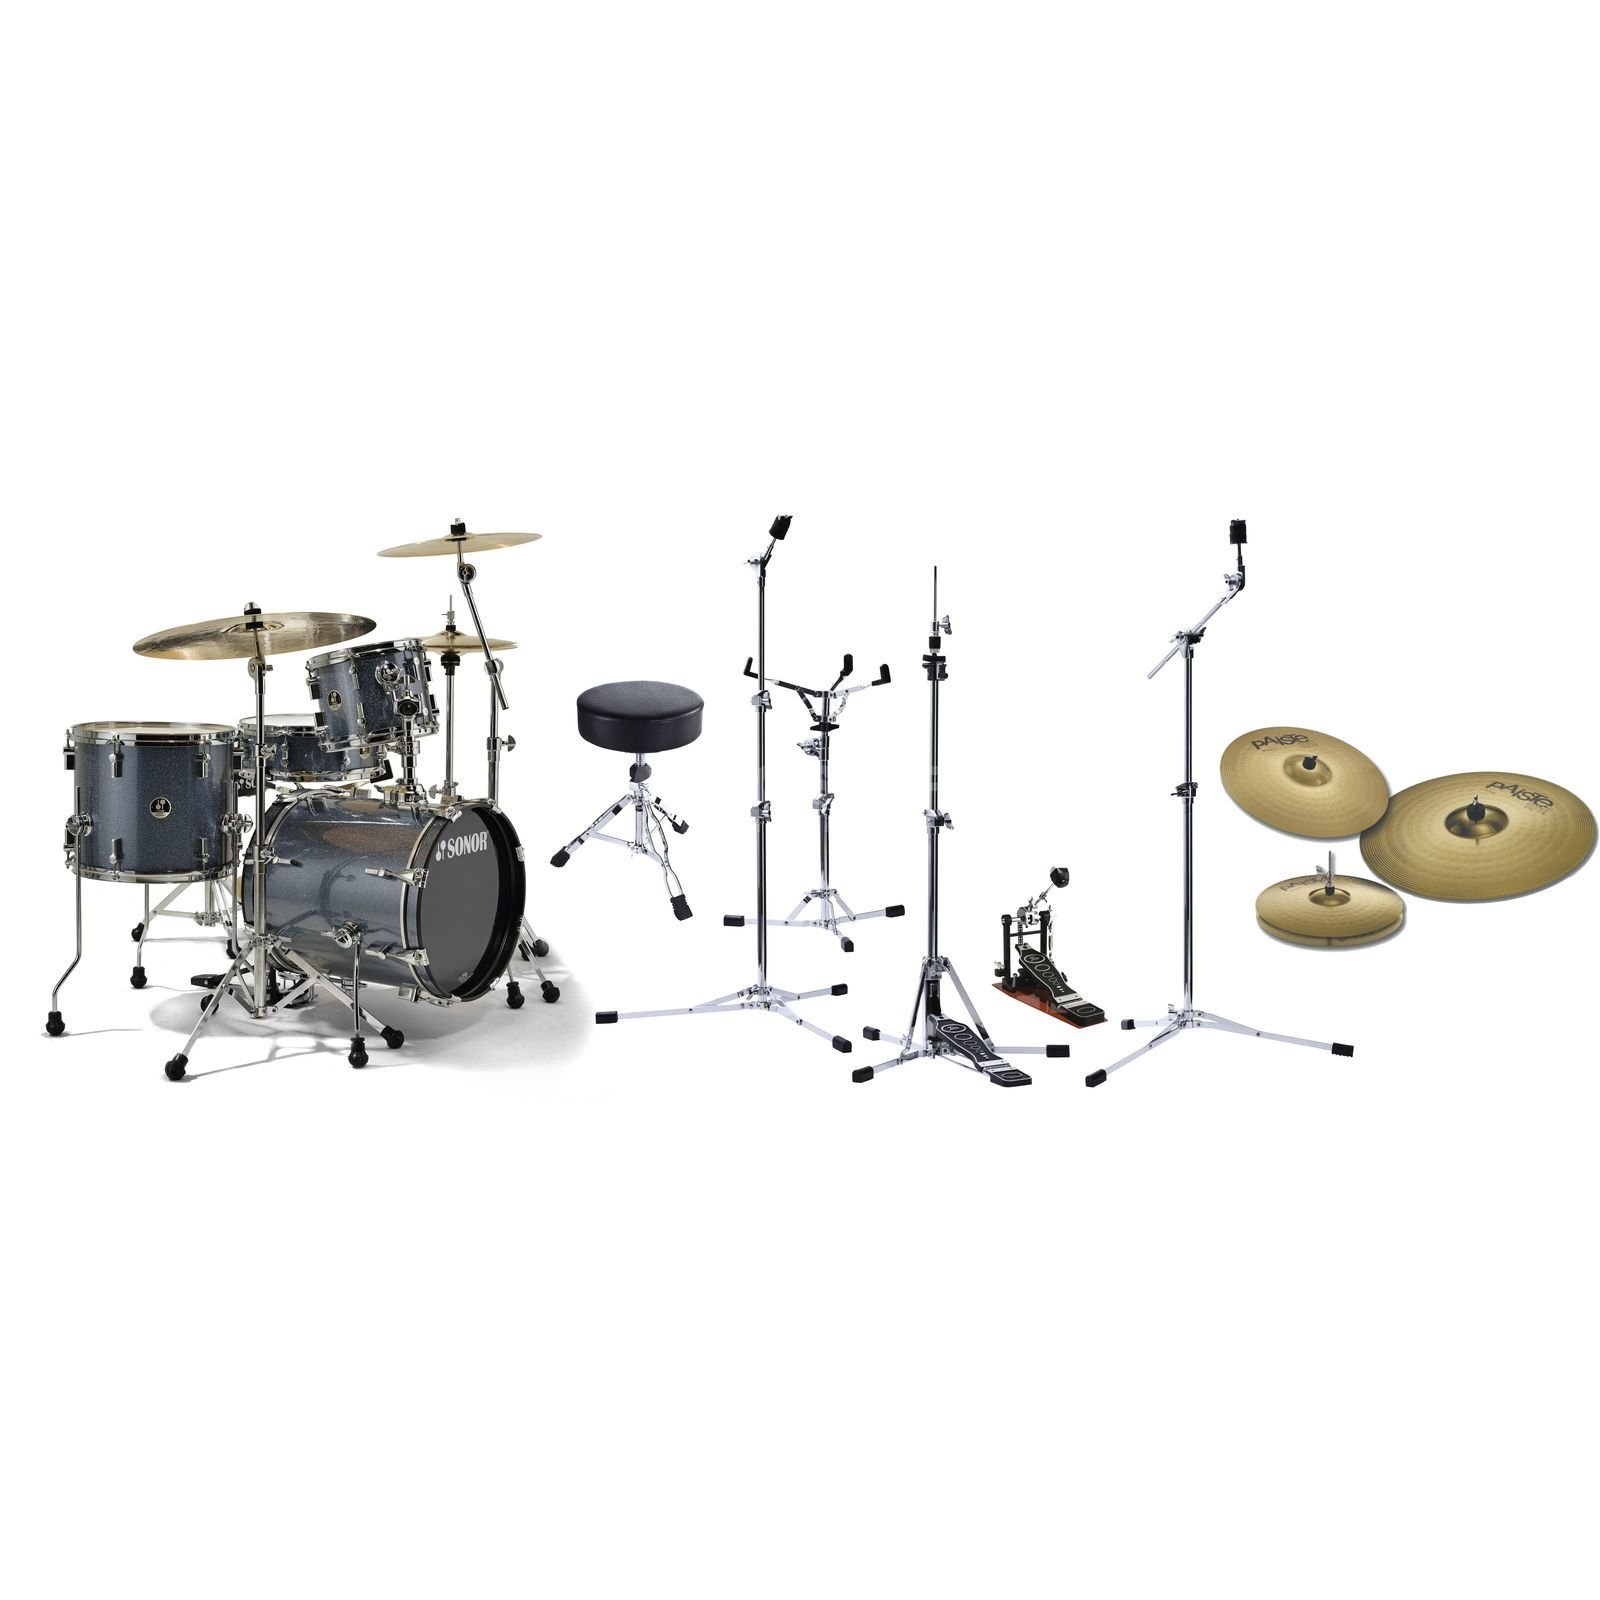 SET Sonor Safari Paiste 101 Super-Bundle Produktbillede